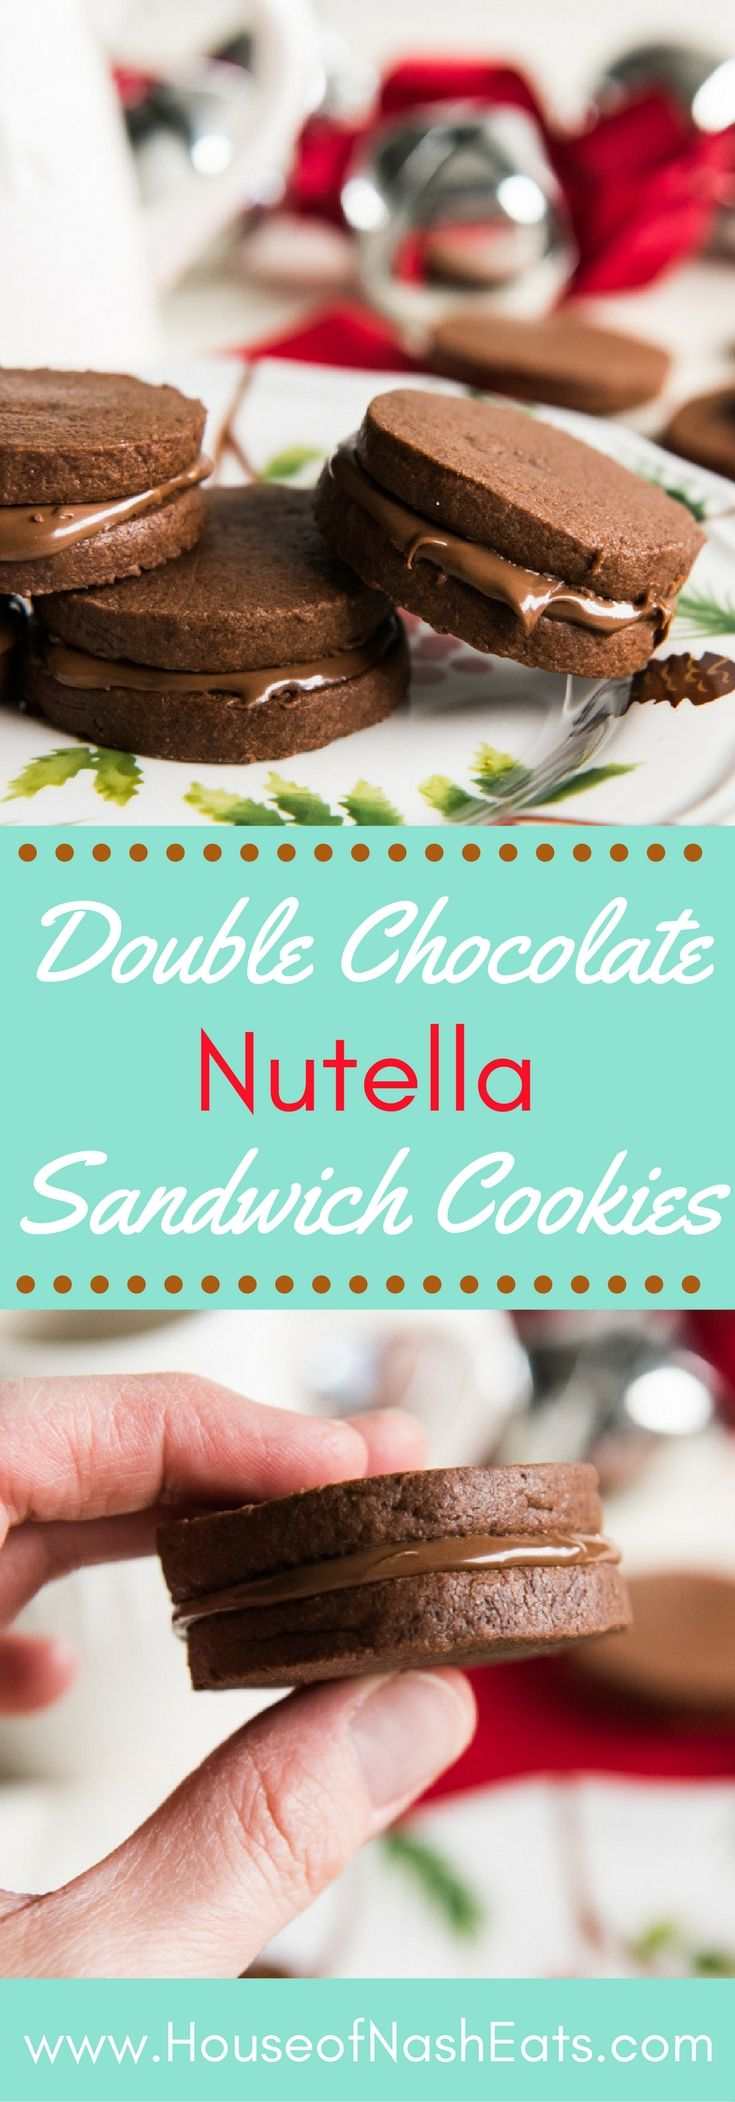 Best 25+ Nutella sandwiches ideas on Pinterest | School ...